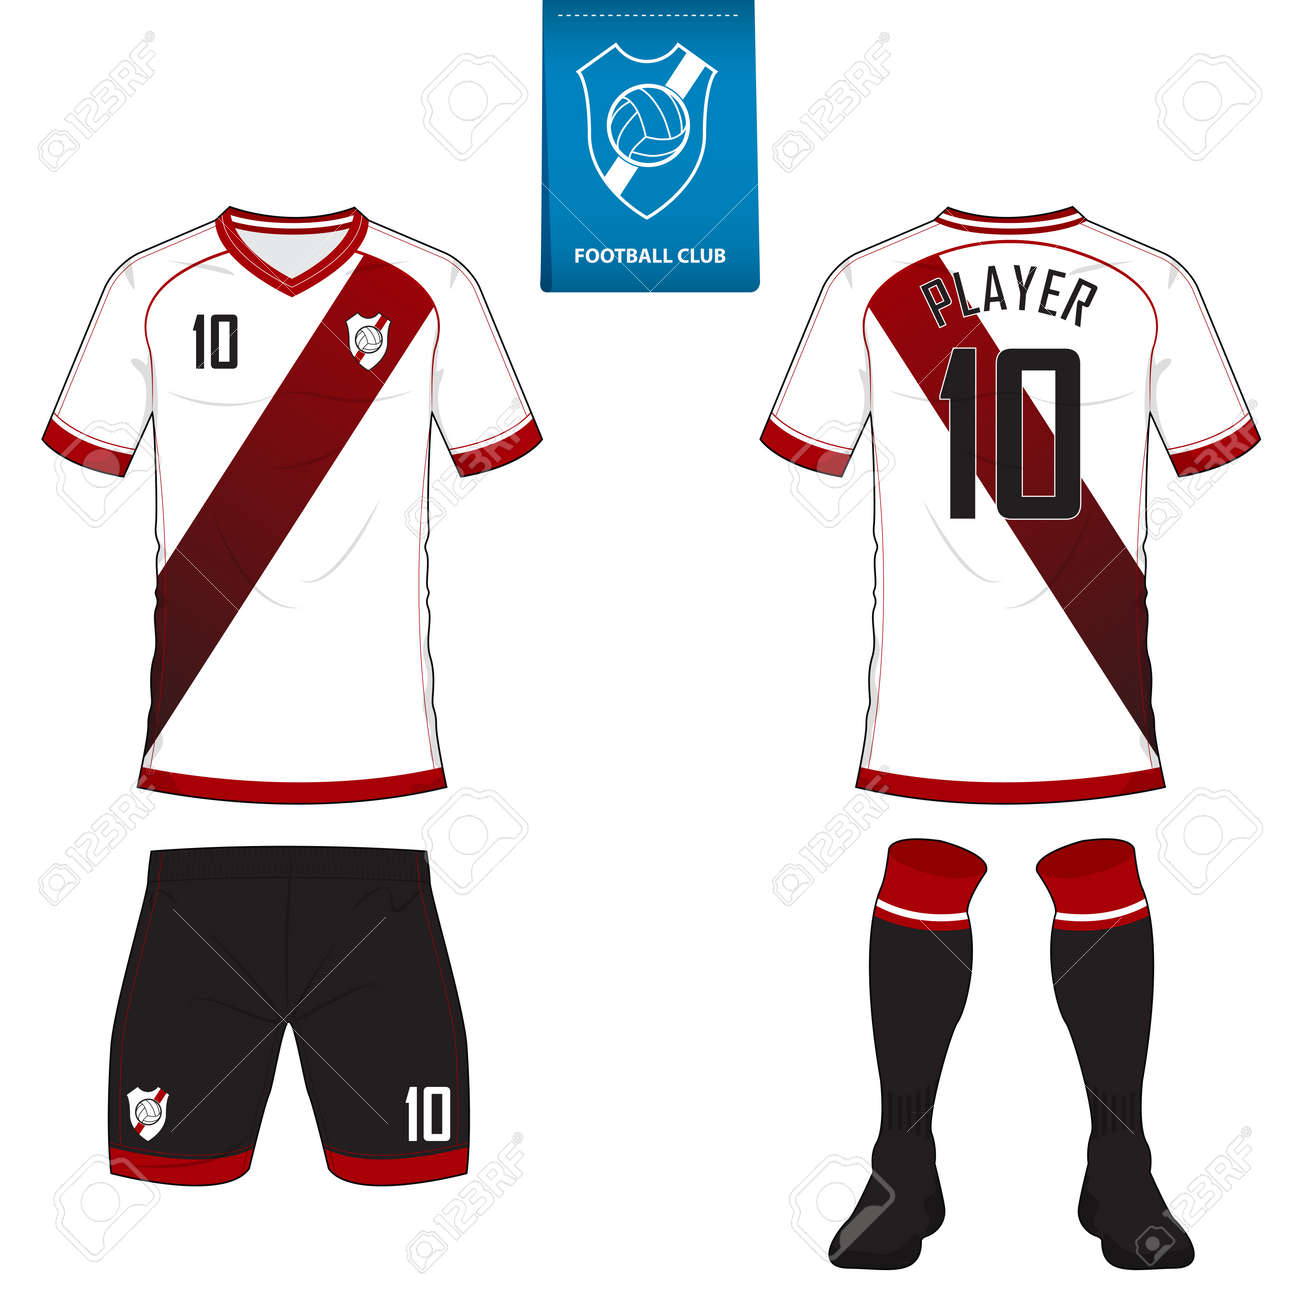 Set Of Soccer Kit Or Football Jersey Template For Club Short Sleeve Shirt